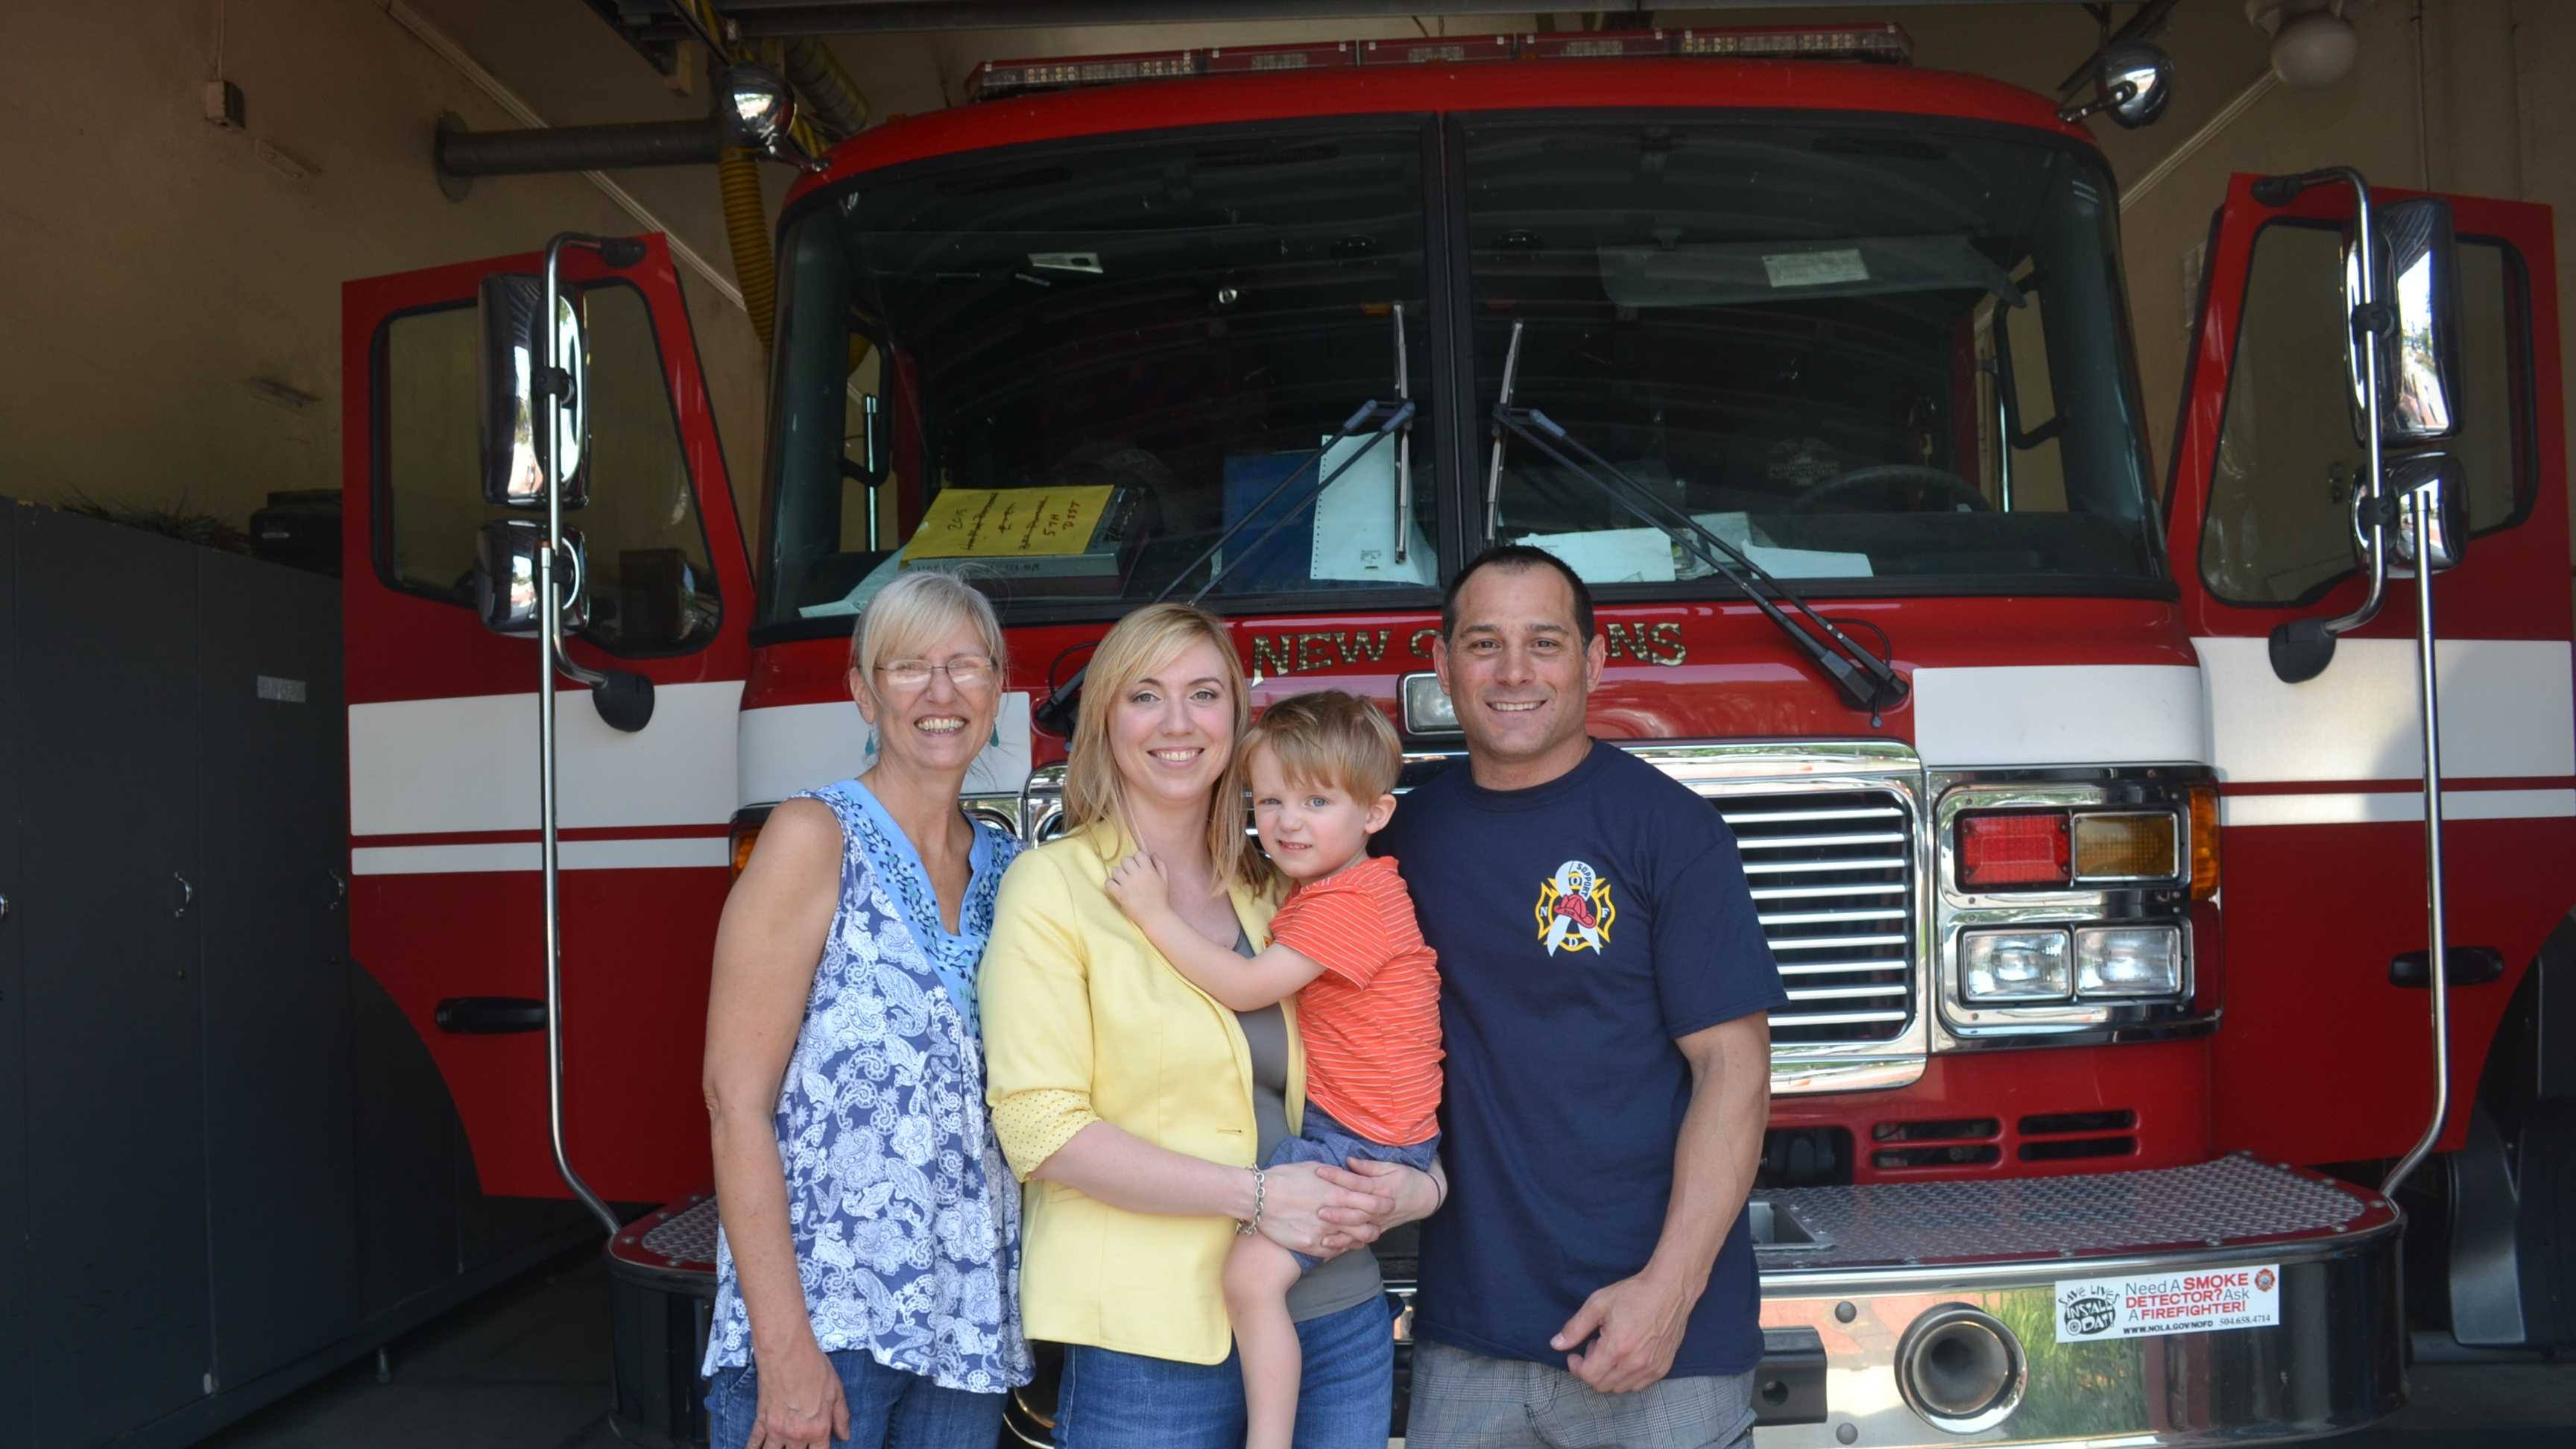 A blood drive is being held Saturday to help a 3-year-old boy with a rare form of brain cancer.Pictured: Missy Lucus (Dom's grandmother), Lacy Majorie (mother), Dominic Majorie (3years old) and organizer Gino Ascani, a New Orleans firefighter.